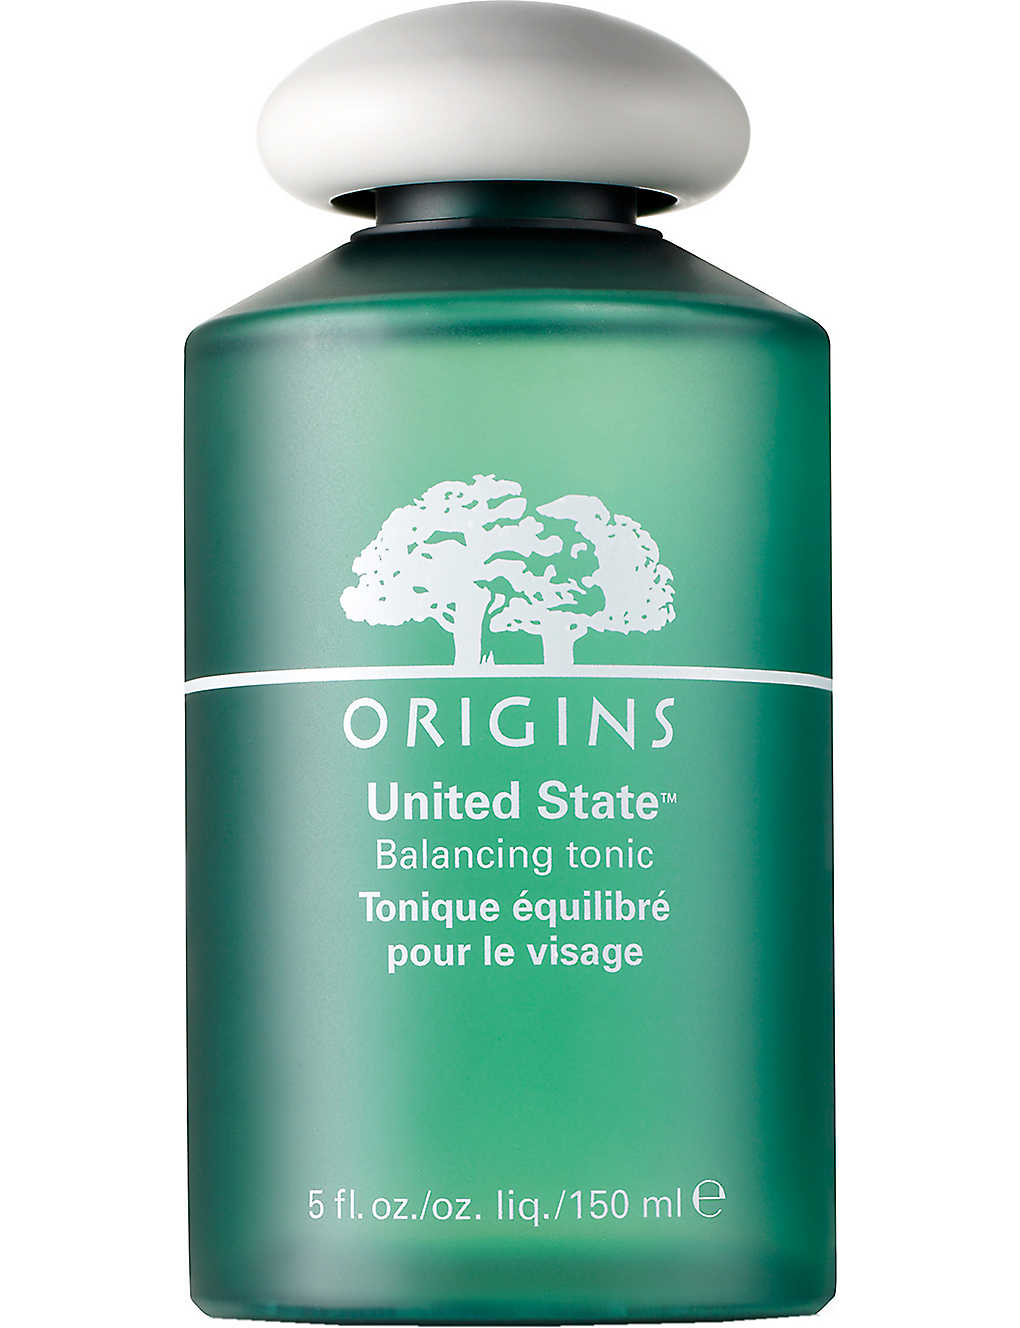 ORIGINS: United State™ Balancing Tonic 150ml